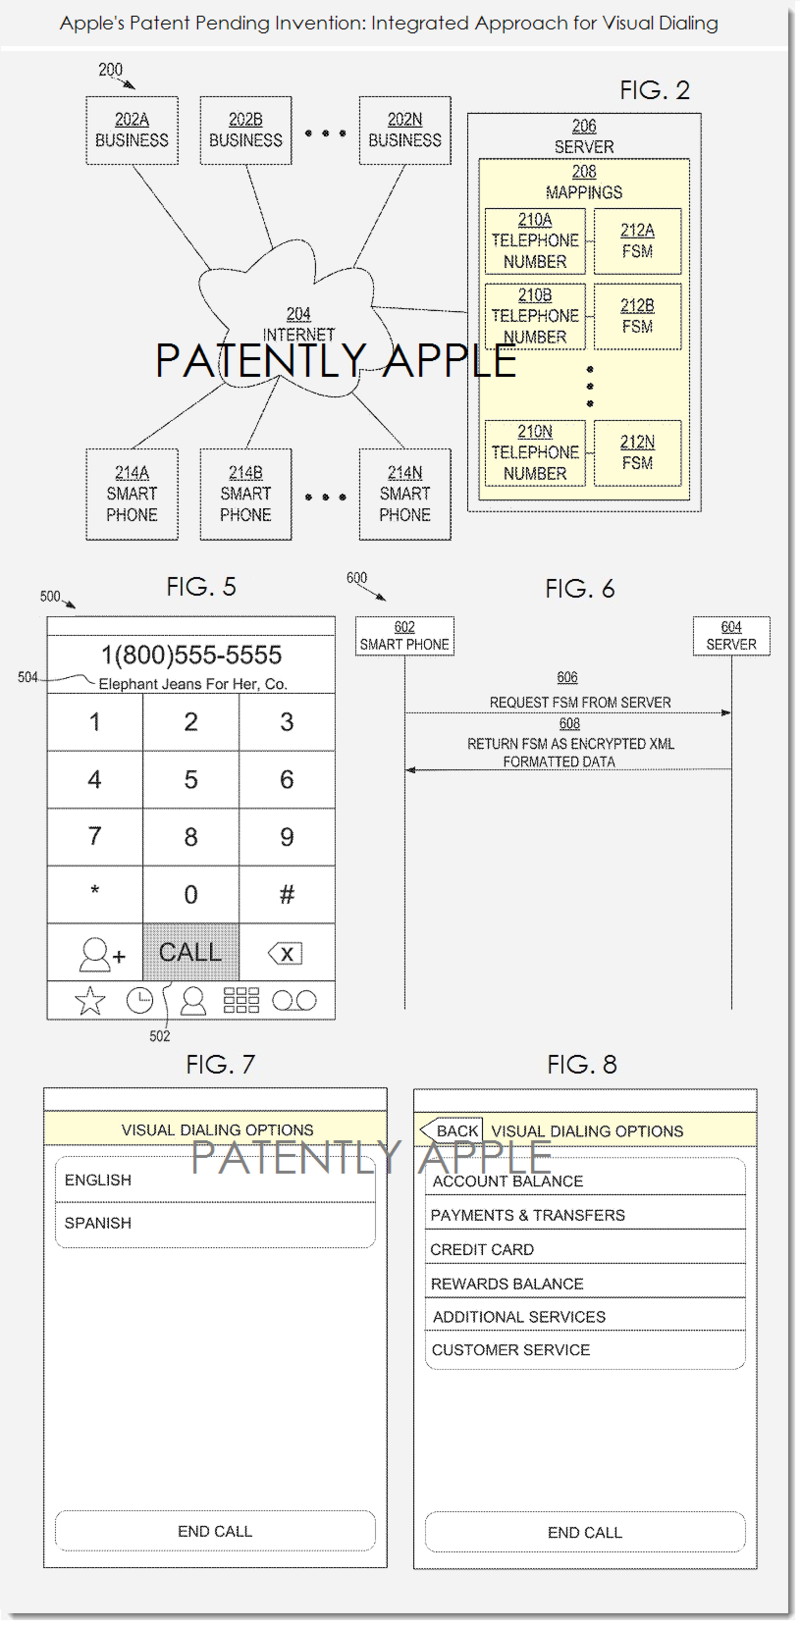 2. Apple patent pending invention - integrated approach for visual dialing